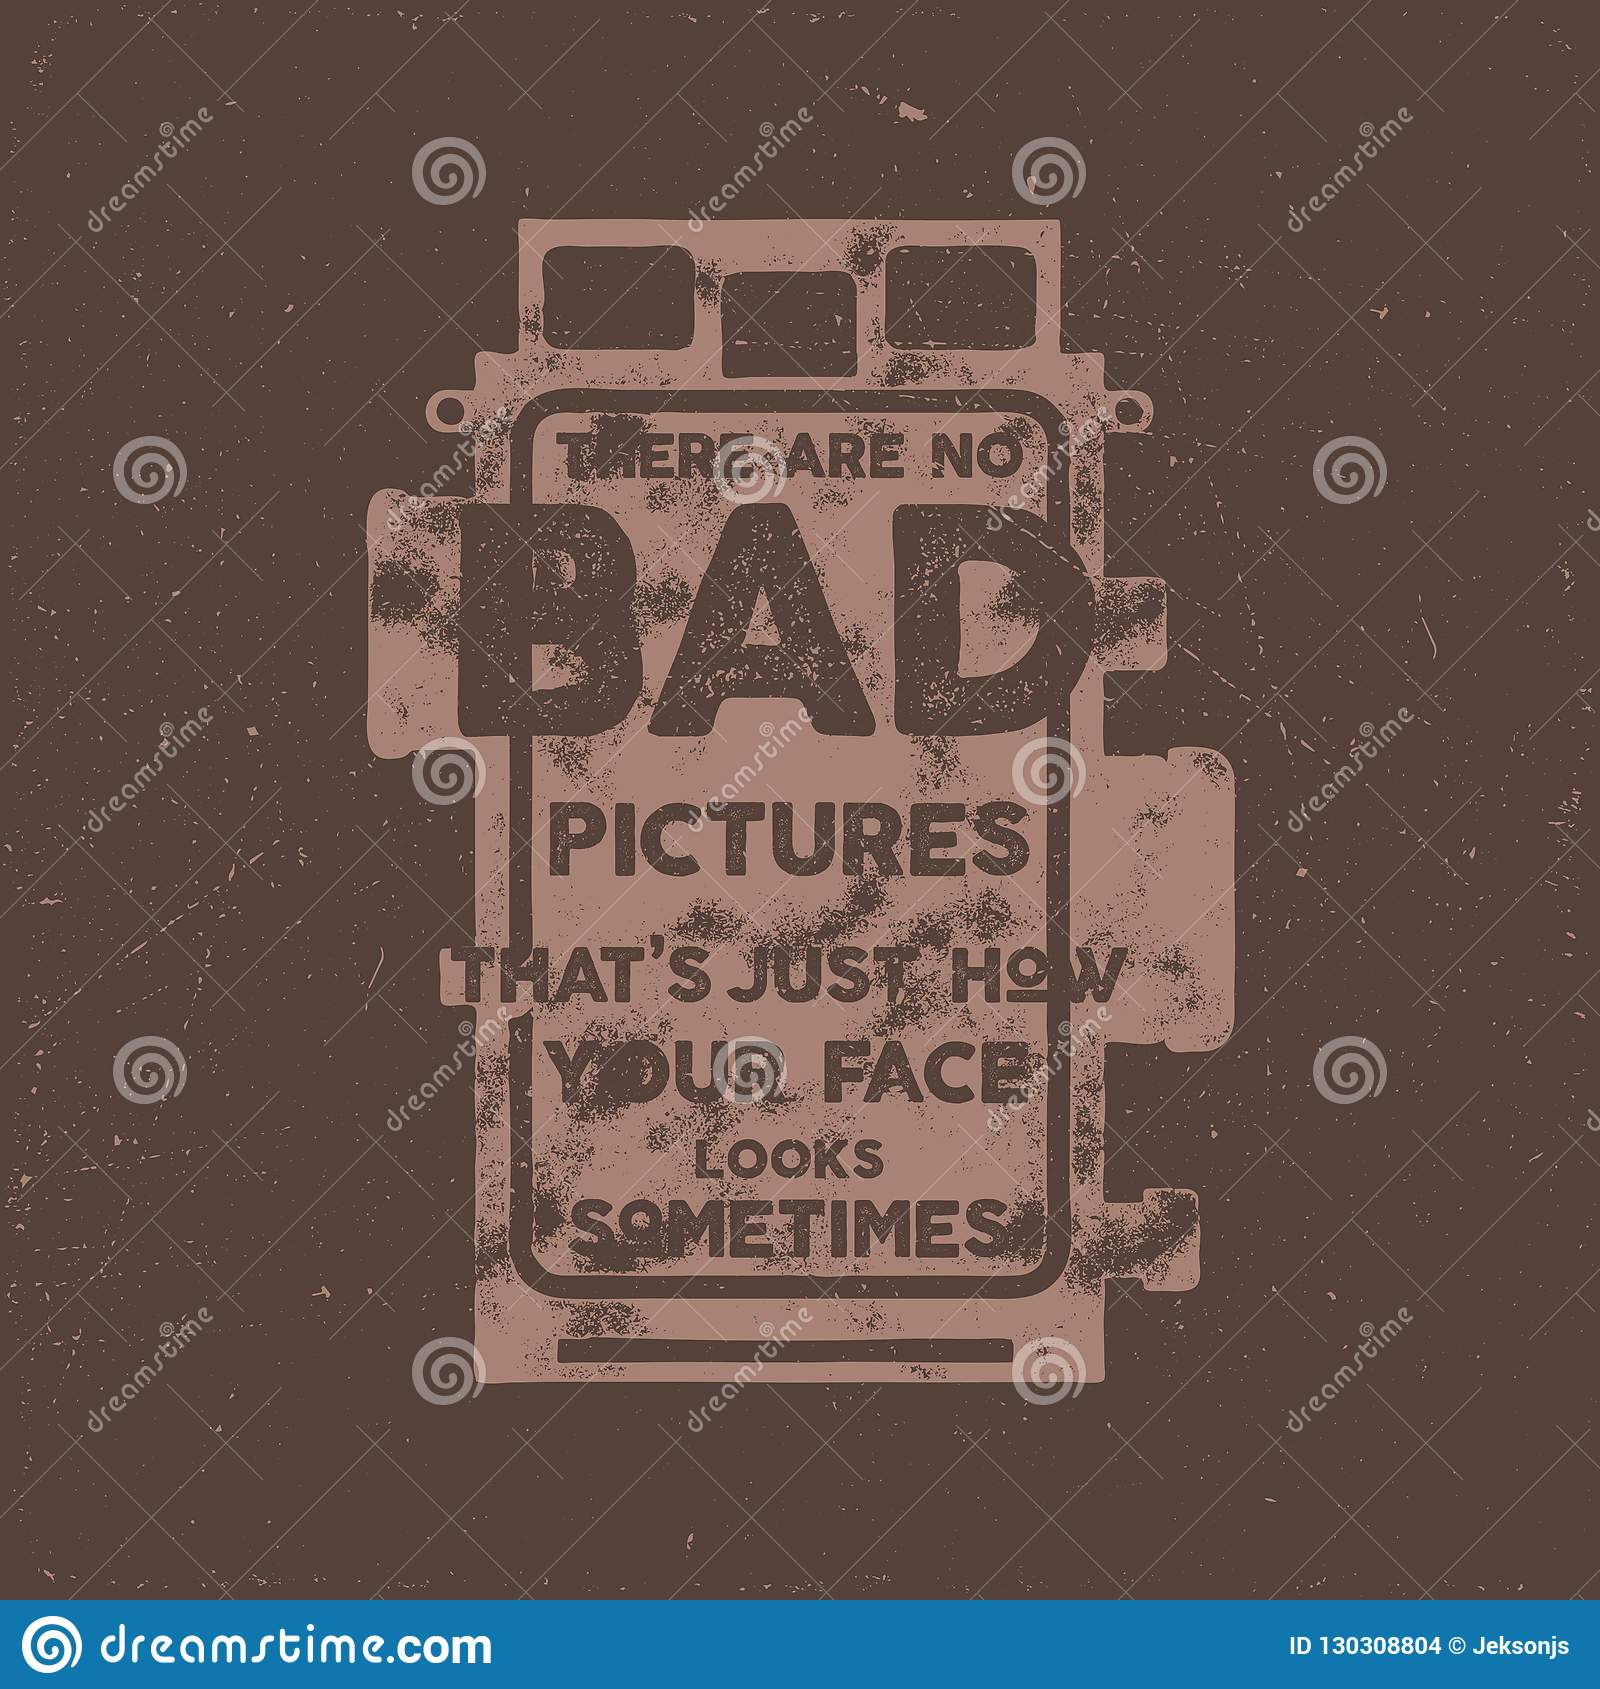 Bad Vintage Style Typography Poster With Old Style Camera And Quote There